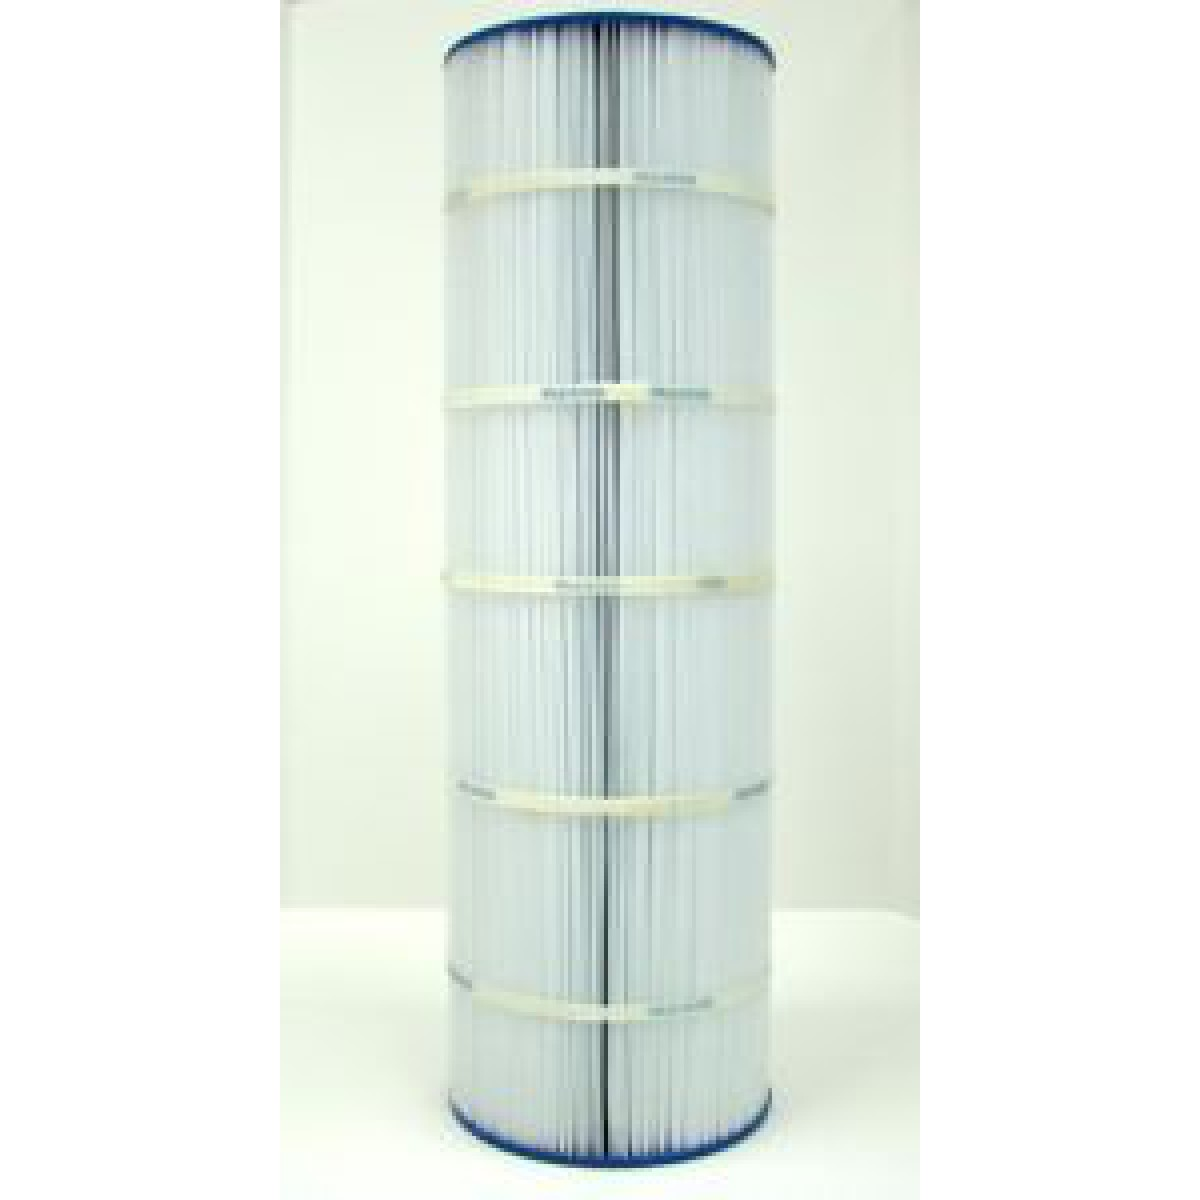 Discount Water Filters and Air Filters at Discount Filter Store.com #244264